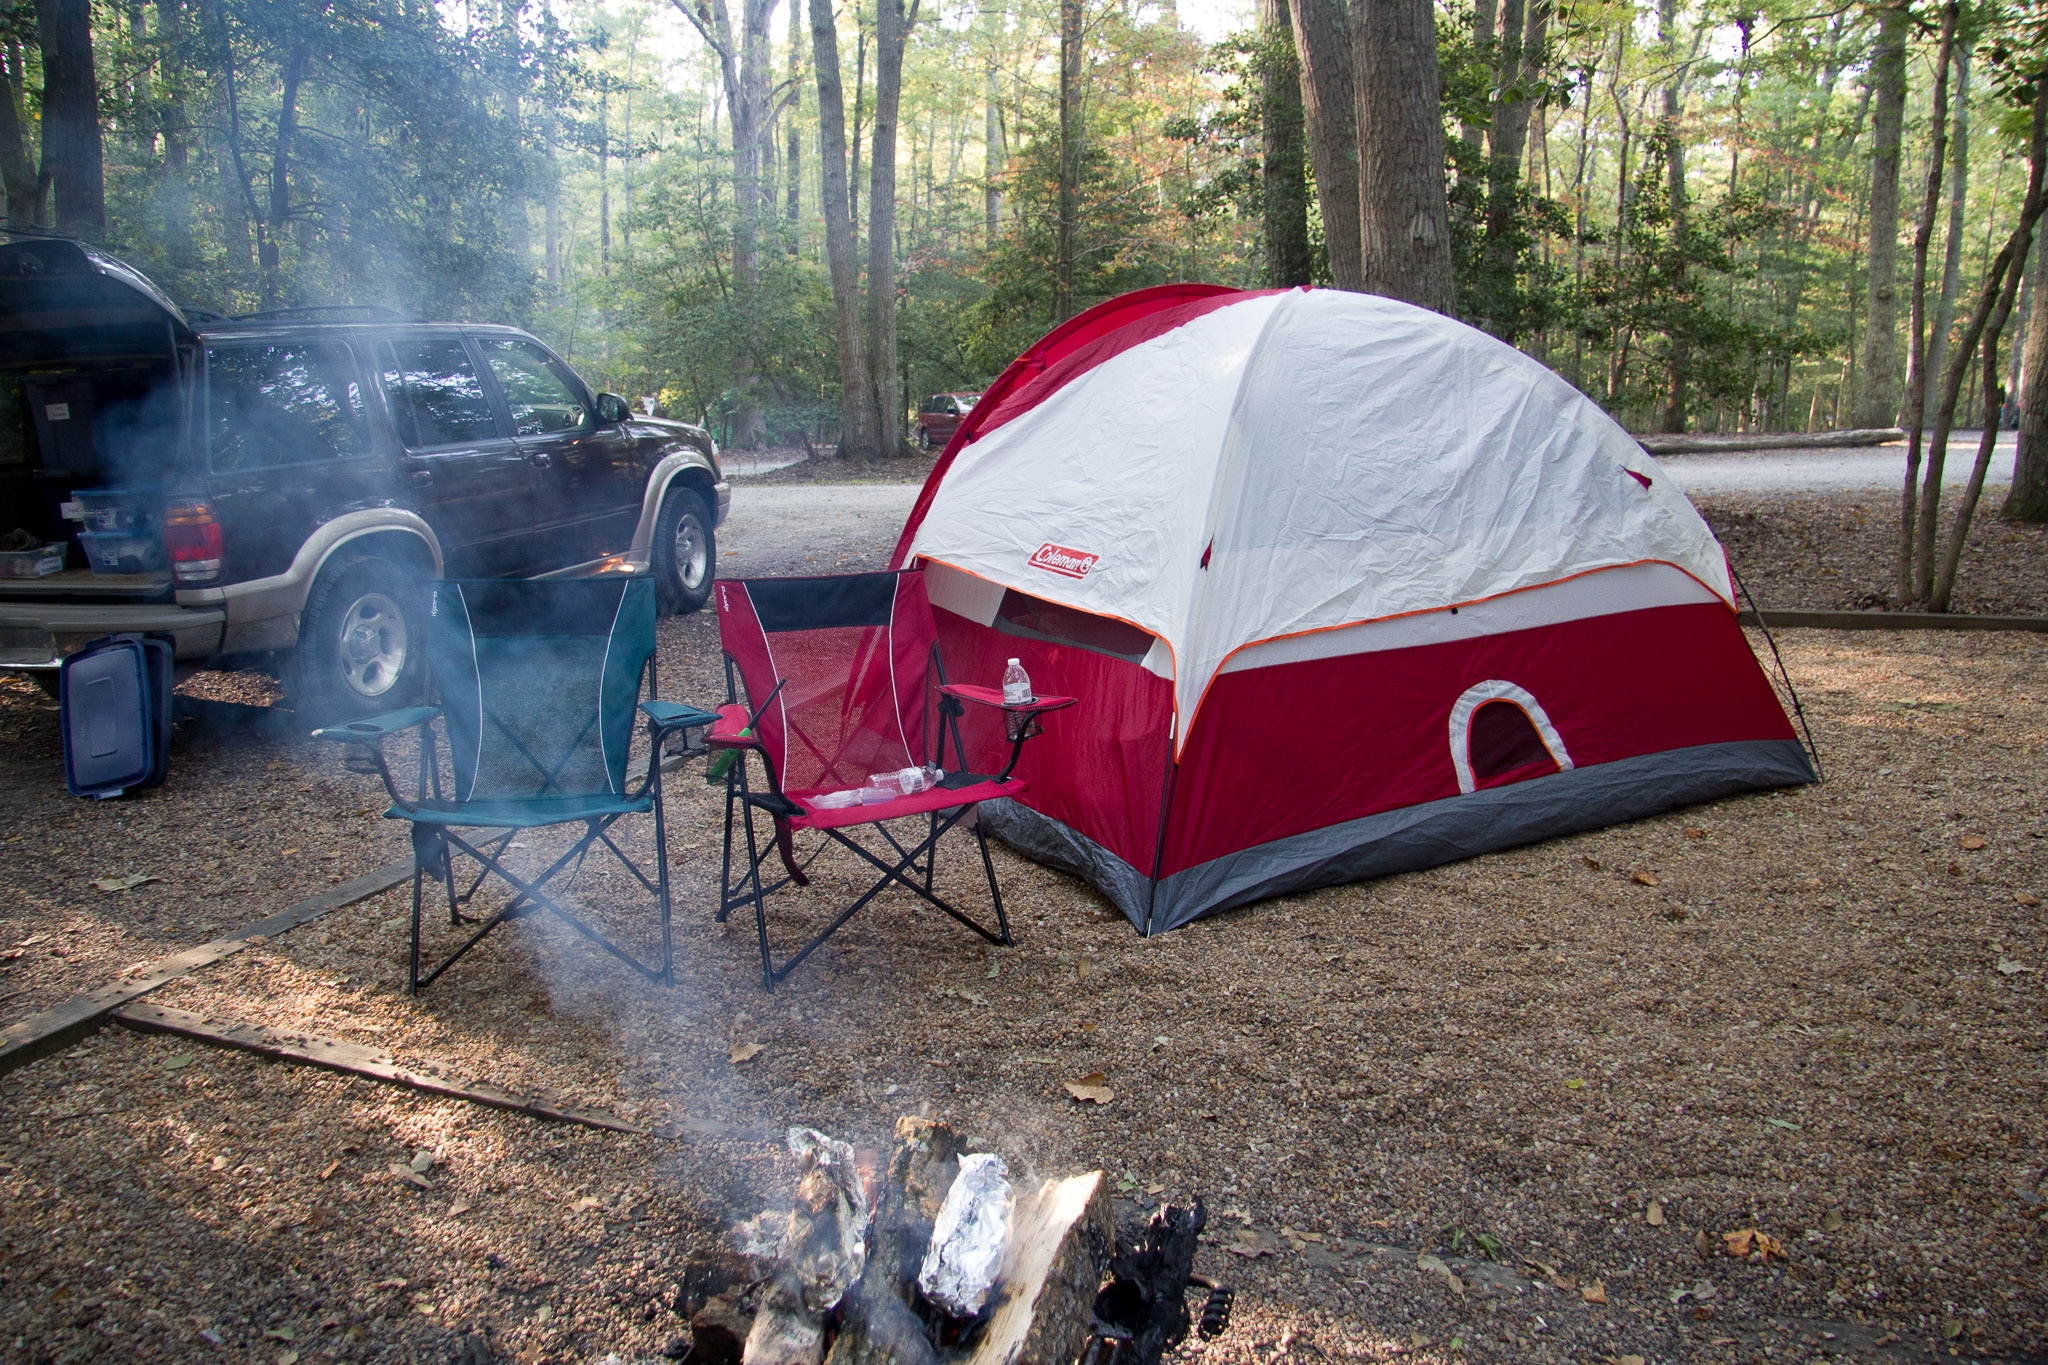 2013_10_05-08_58_13-westmoreland-state-park-camping